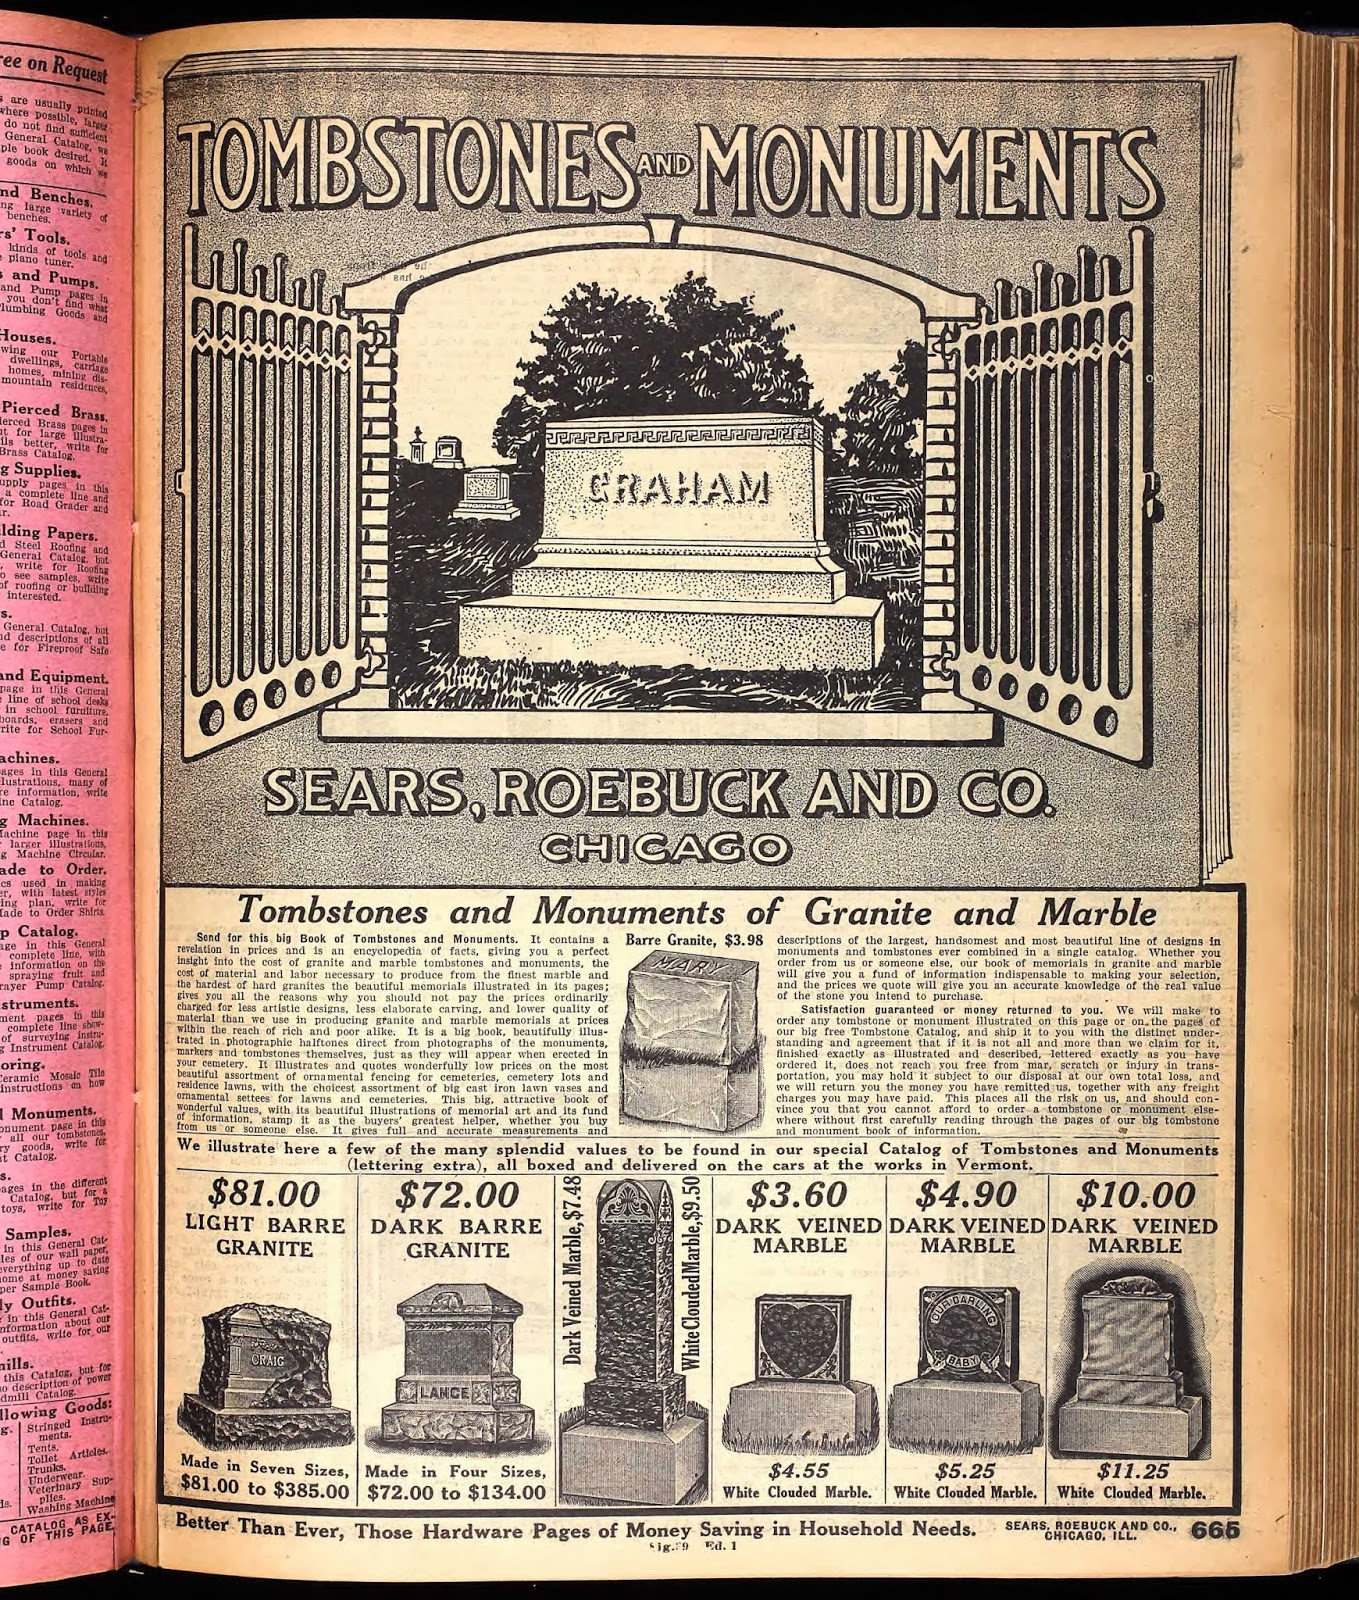 Sears Catalog, Tombstones